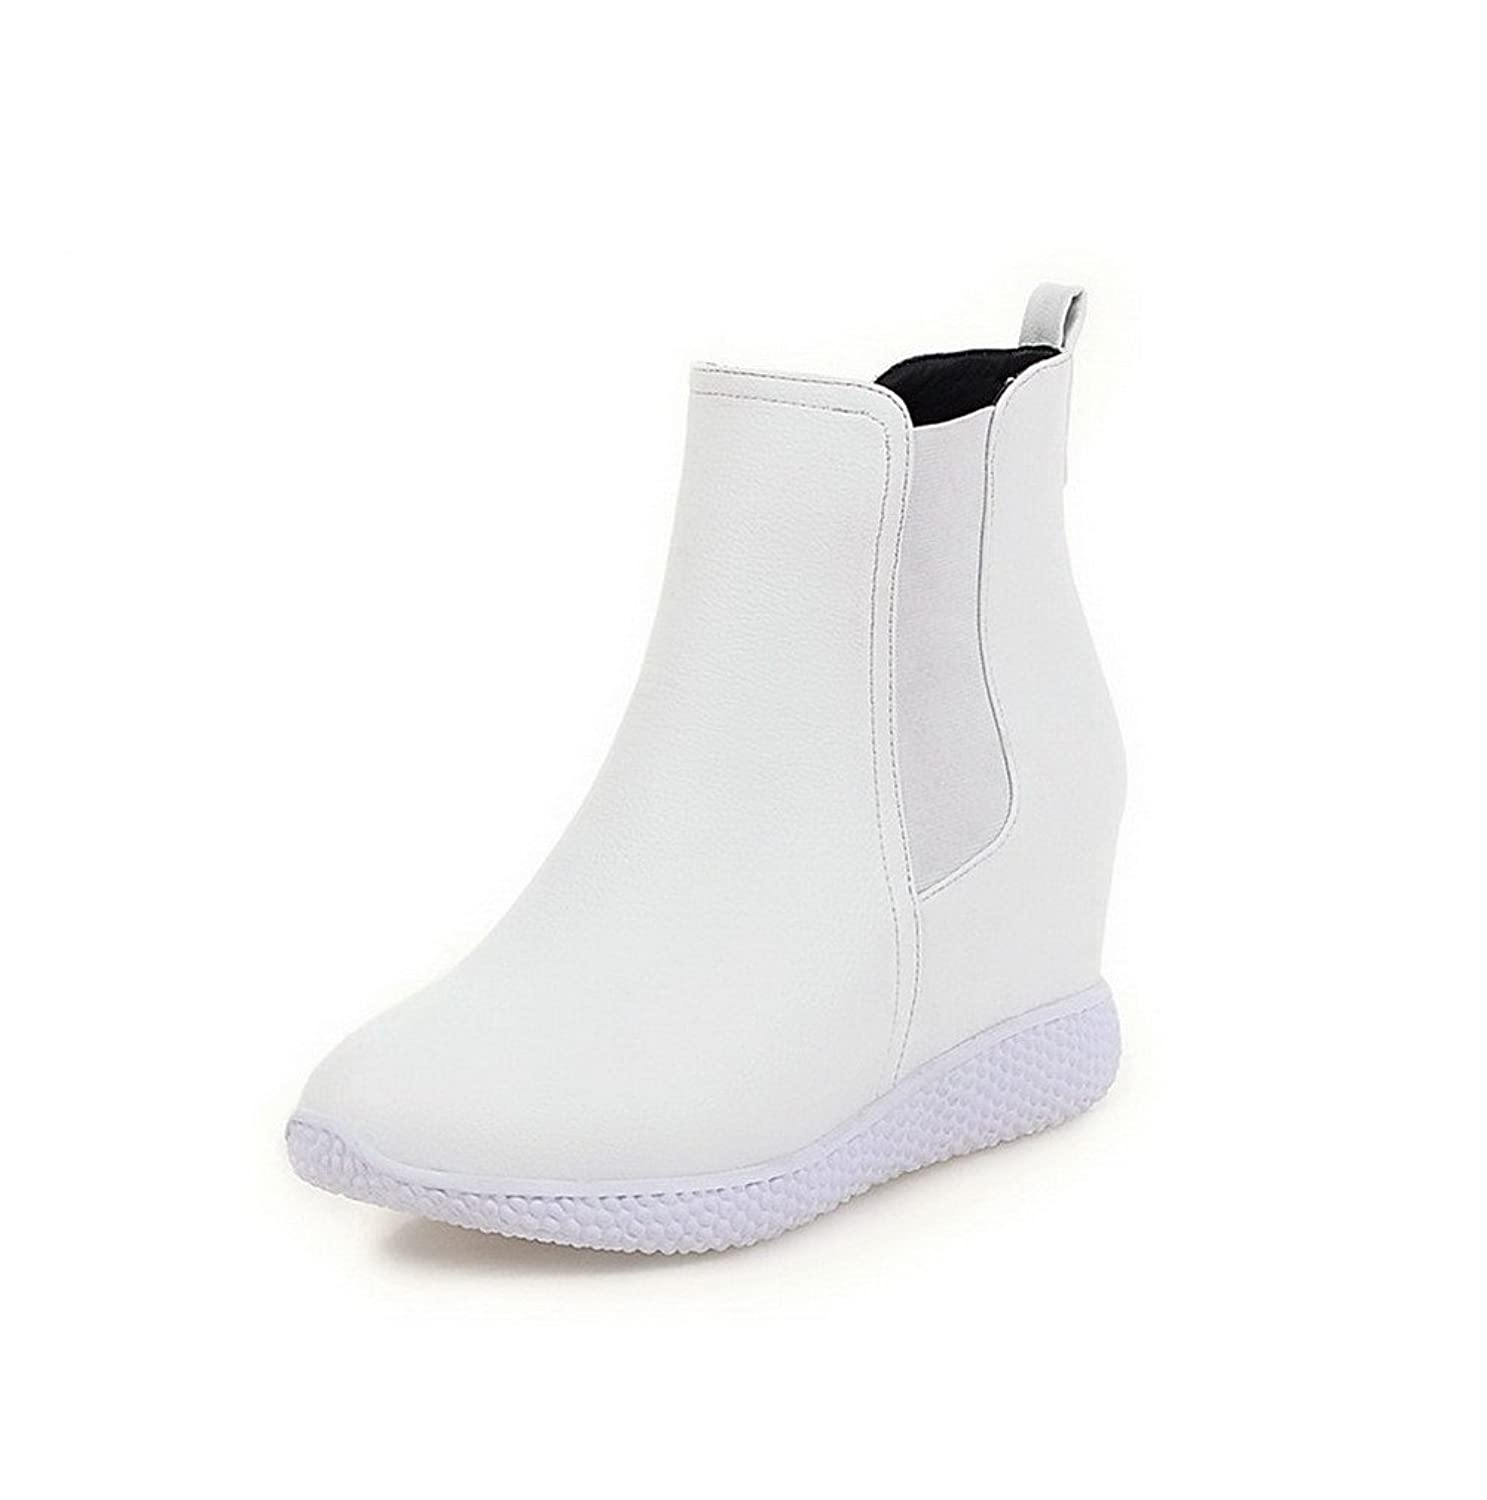 VogueZone009 Women's PU Low-top Solid Pull-on High-Heels Boots